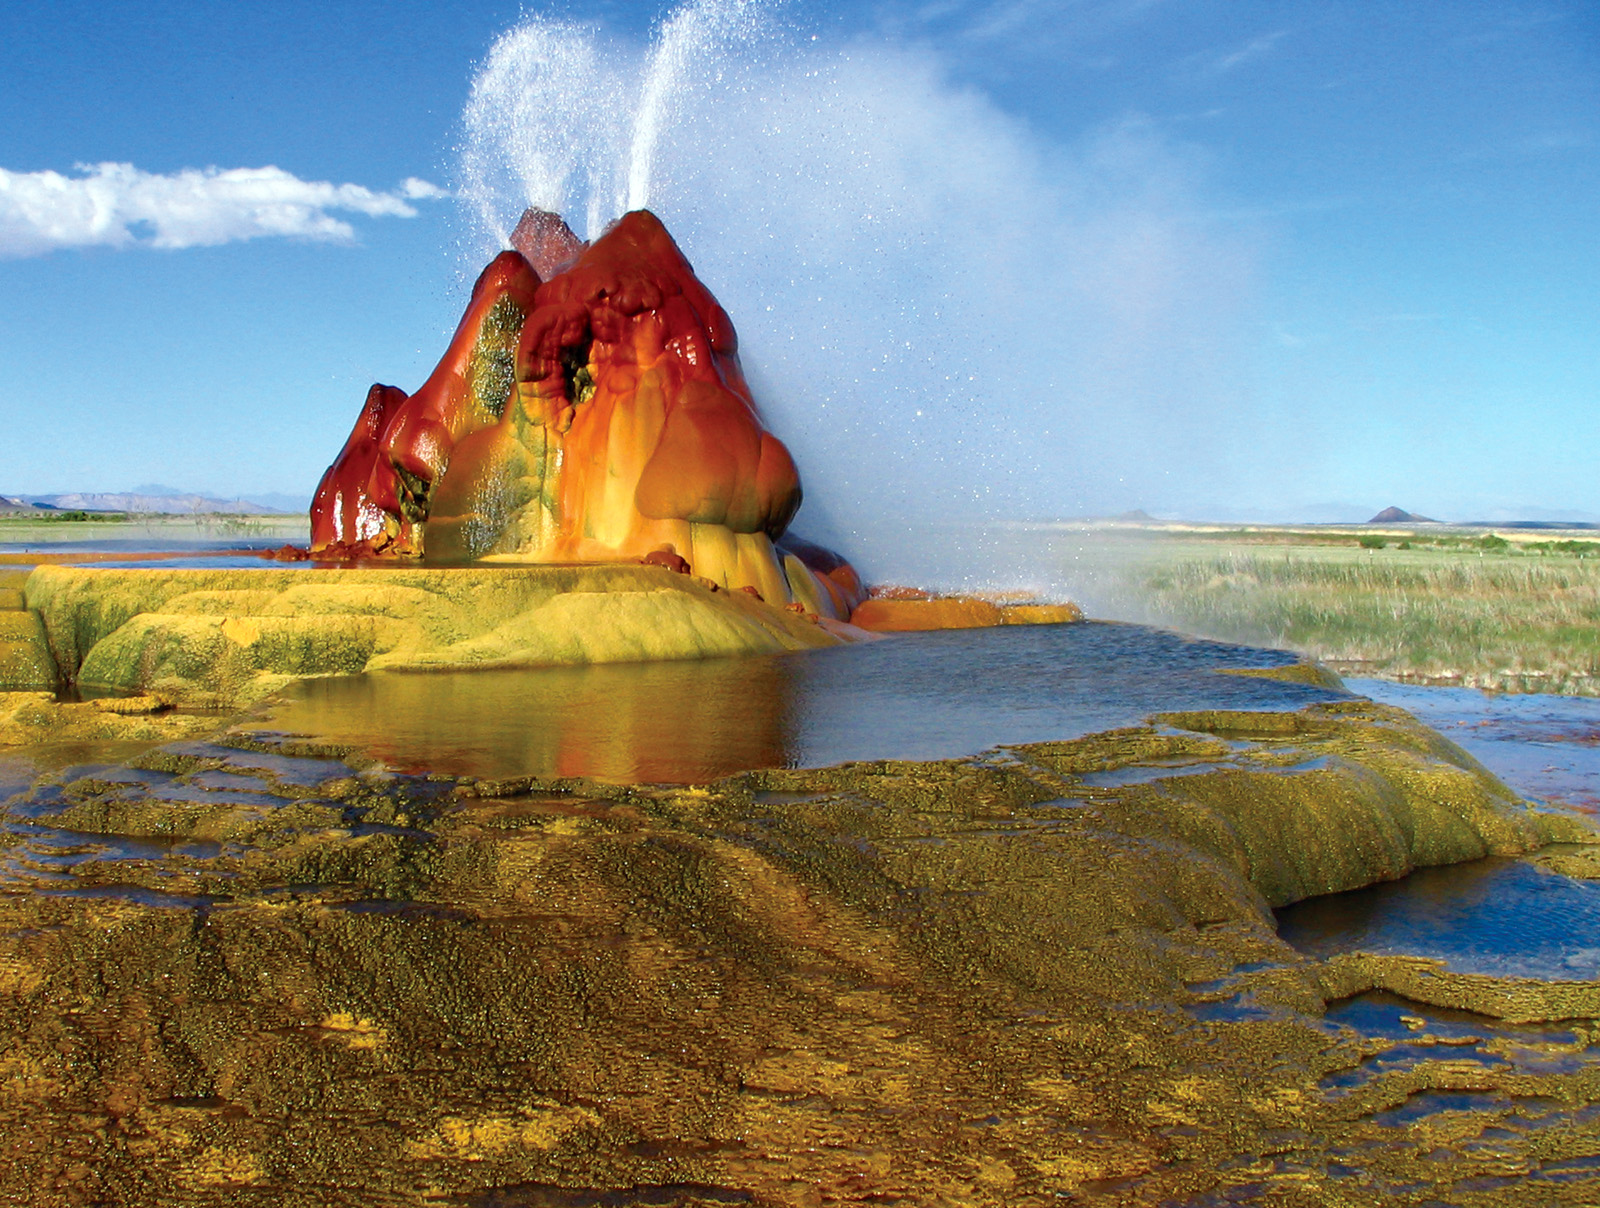 Fly Geyser, em Nevada, nos Estados Unidos (foto: wikipedia commons)